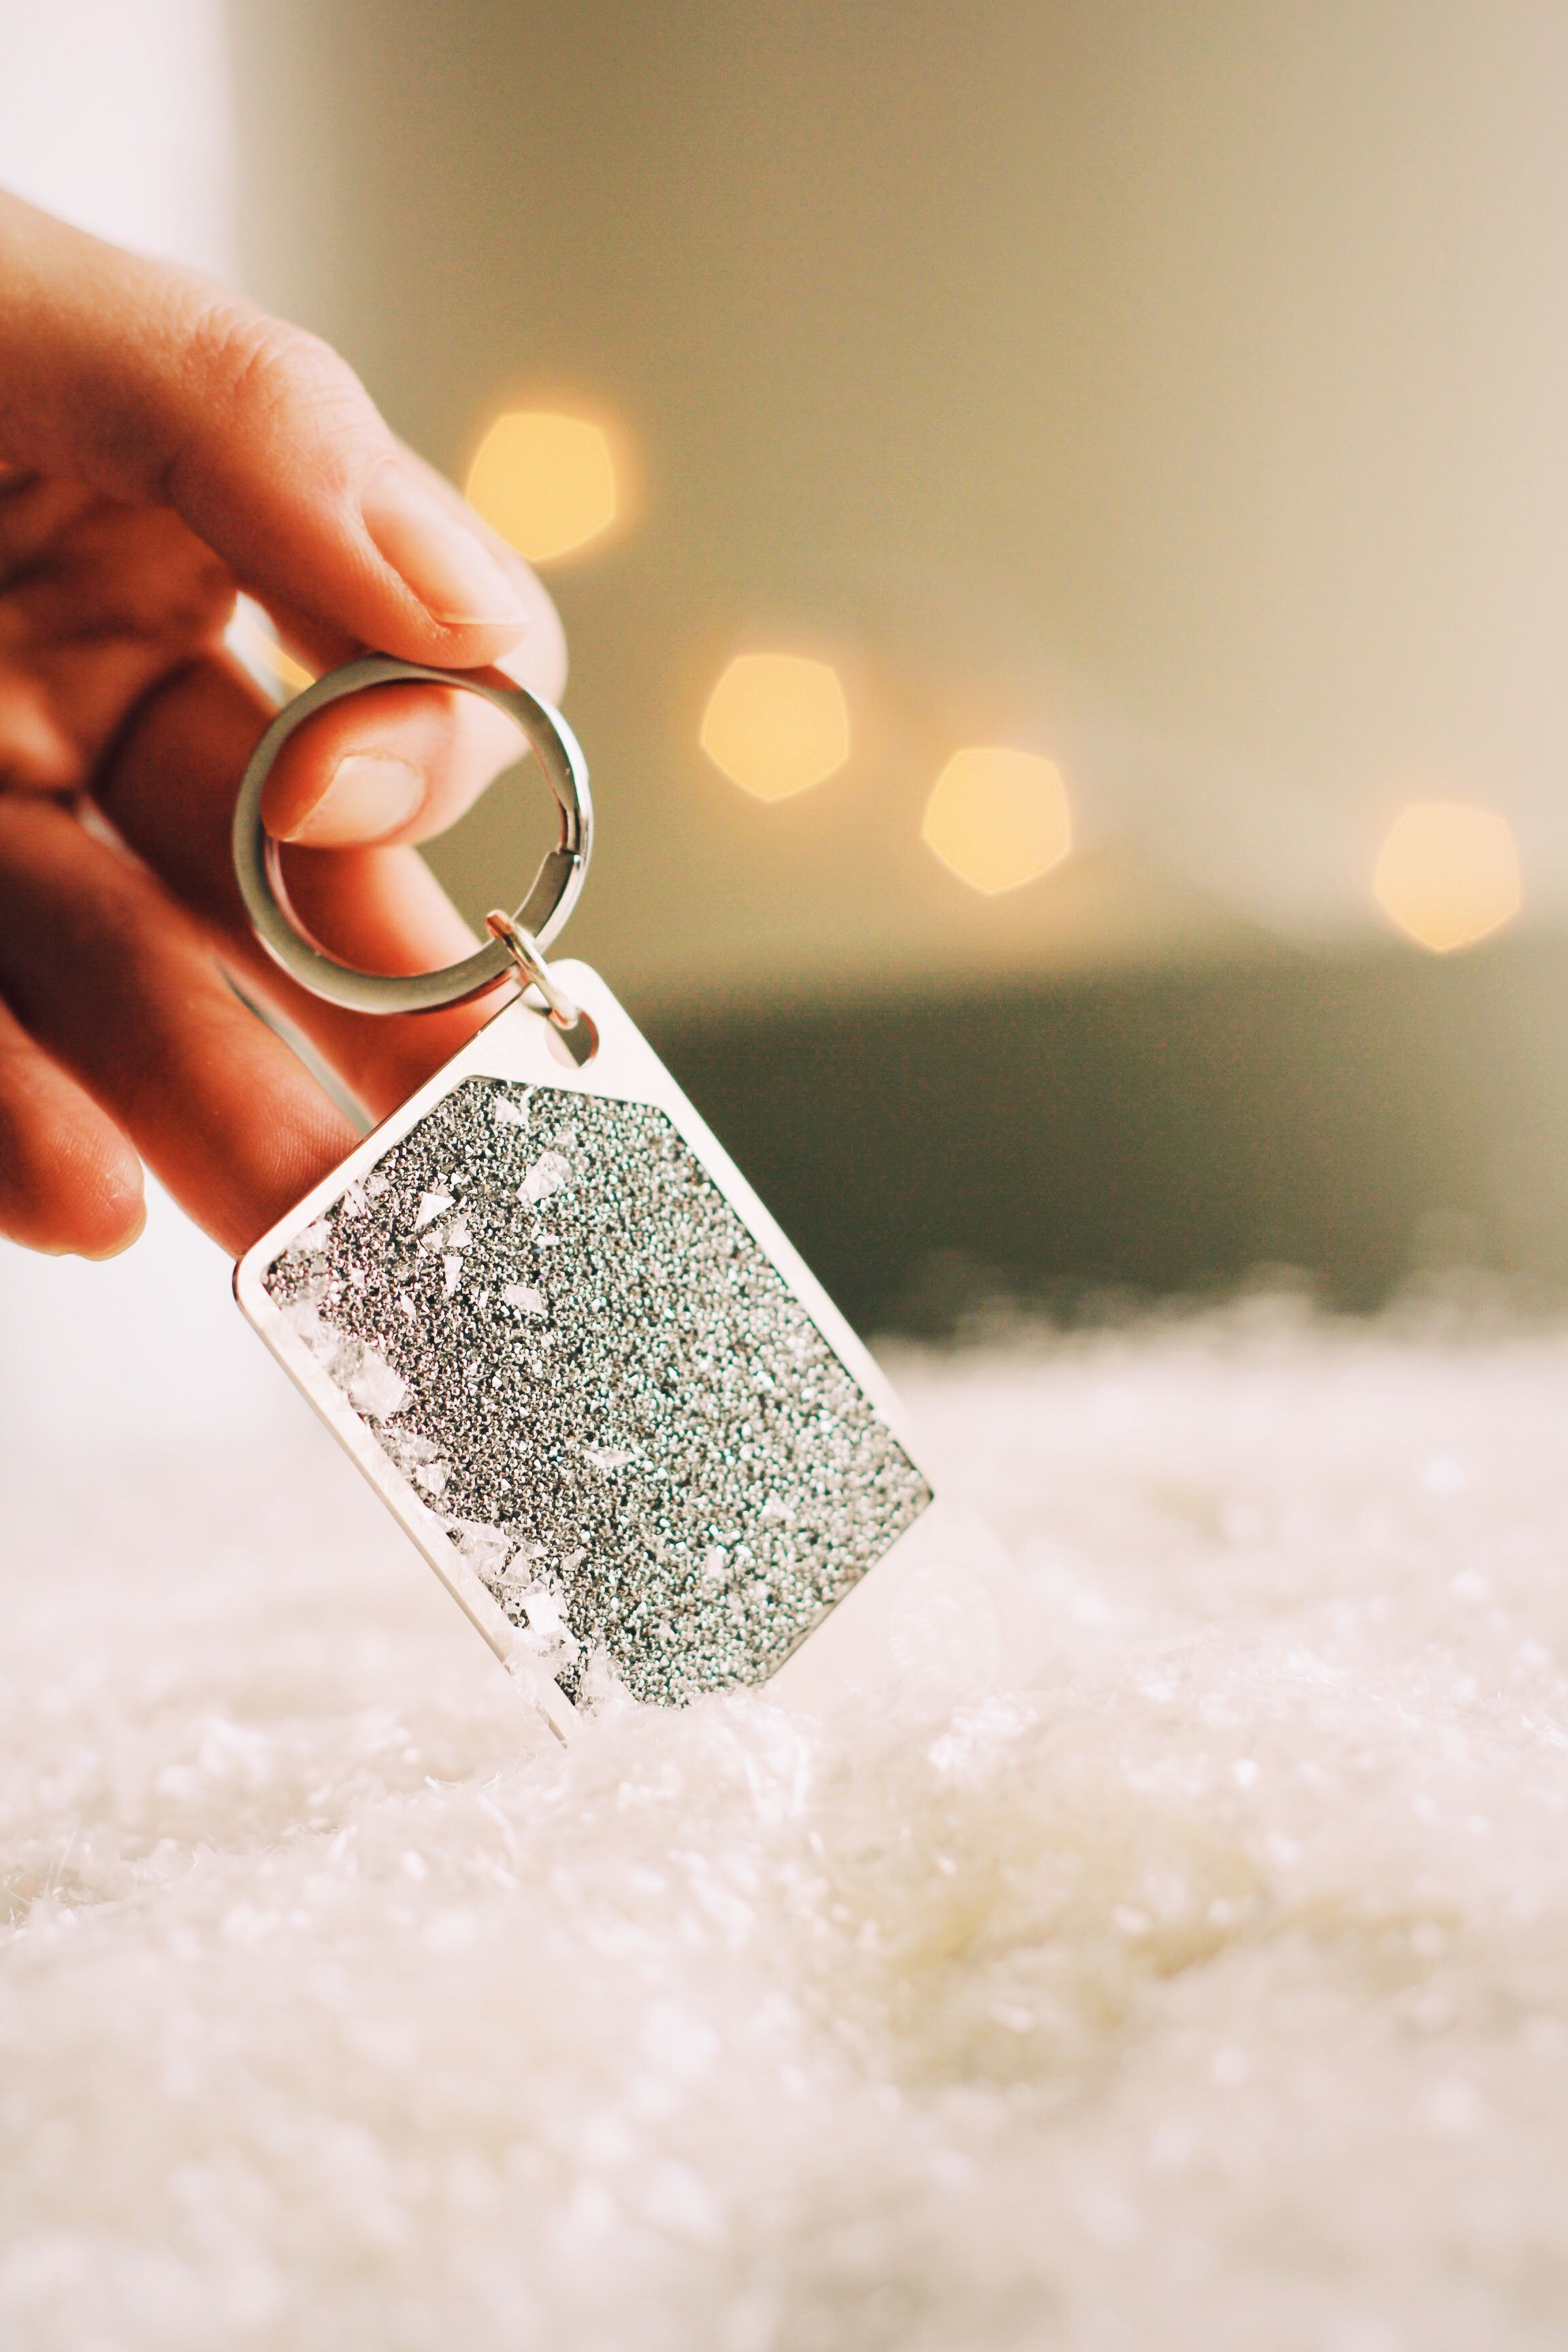 4466bff5839 This limited edition Silver Starbucks Card adorned with Swarovski crystals  is now available in select stores while supplies last.